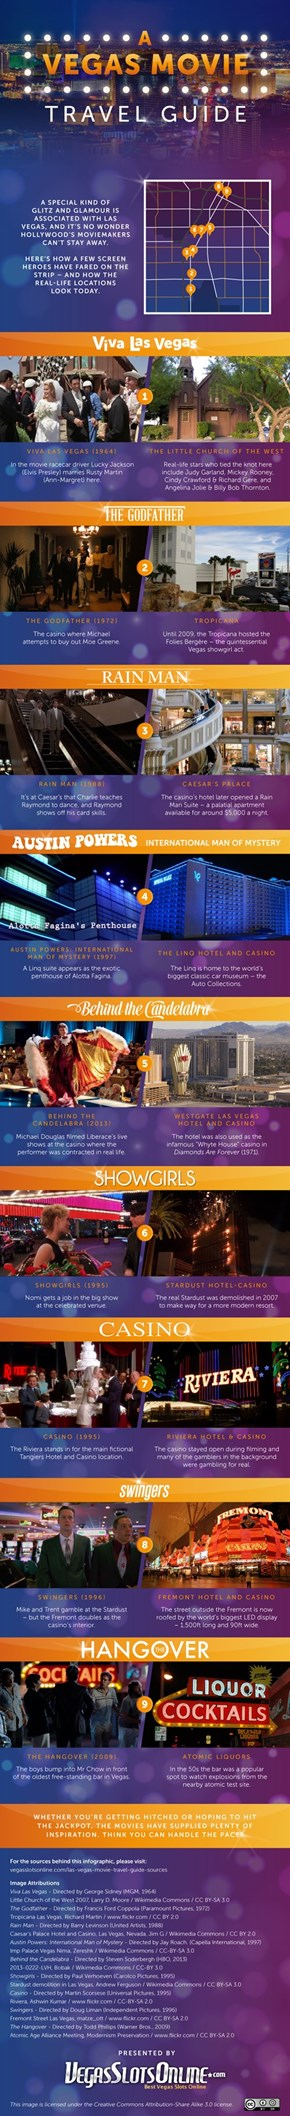 A Vegas Movie Travel Guide